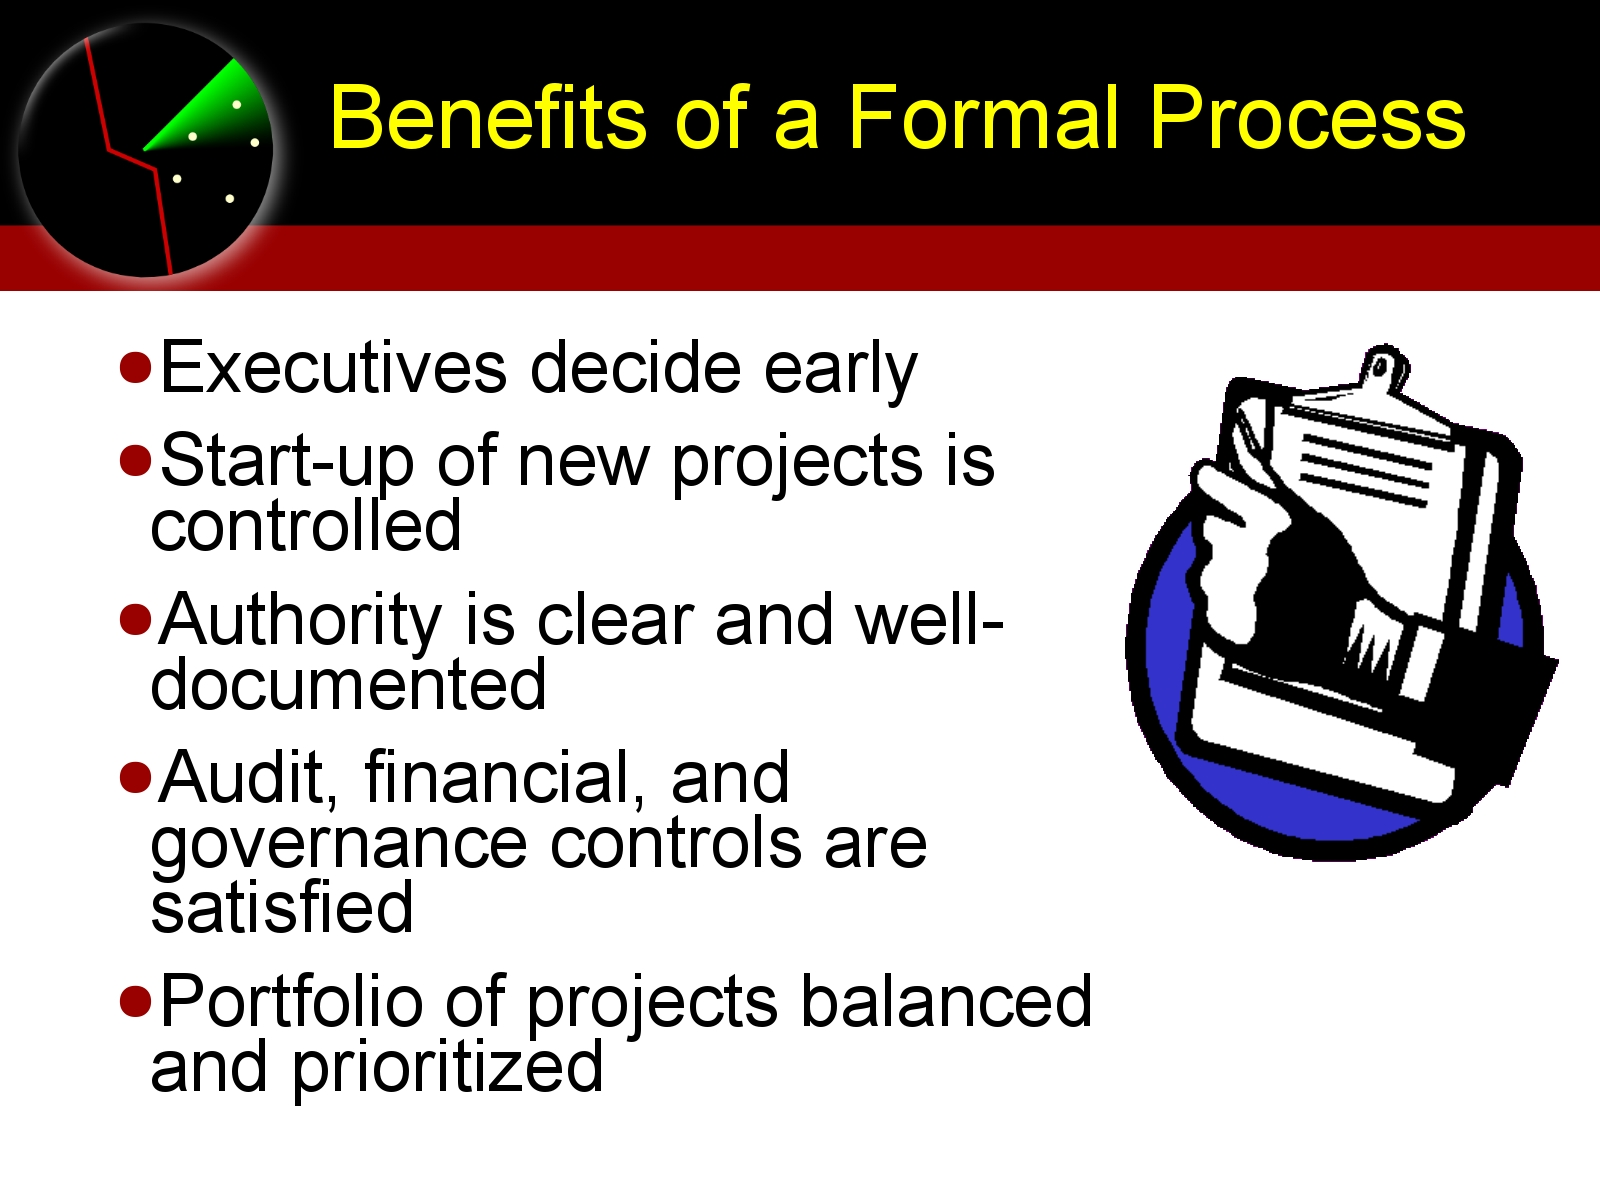 Maturity and Formal Process